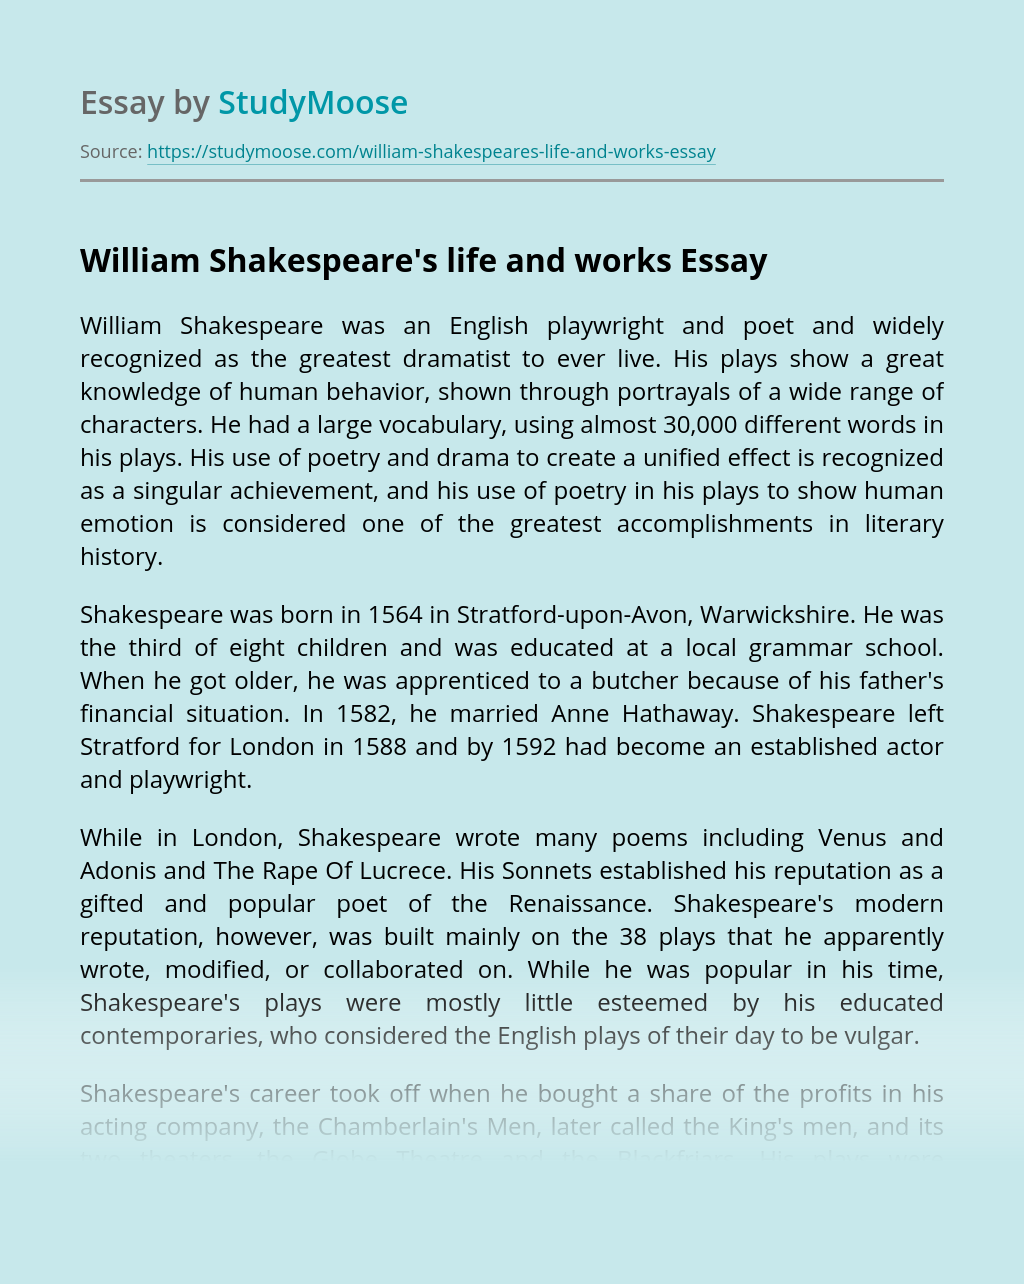 Pay for academic essay on shakespeare a term paper for me